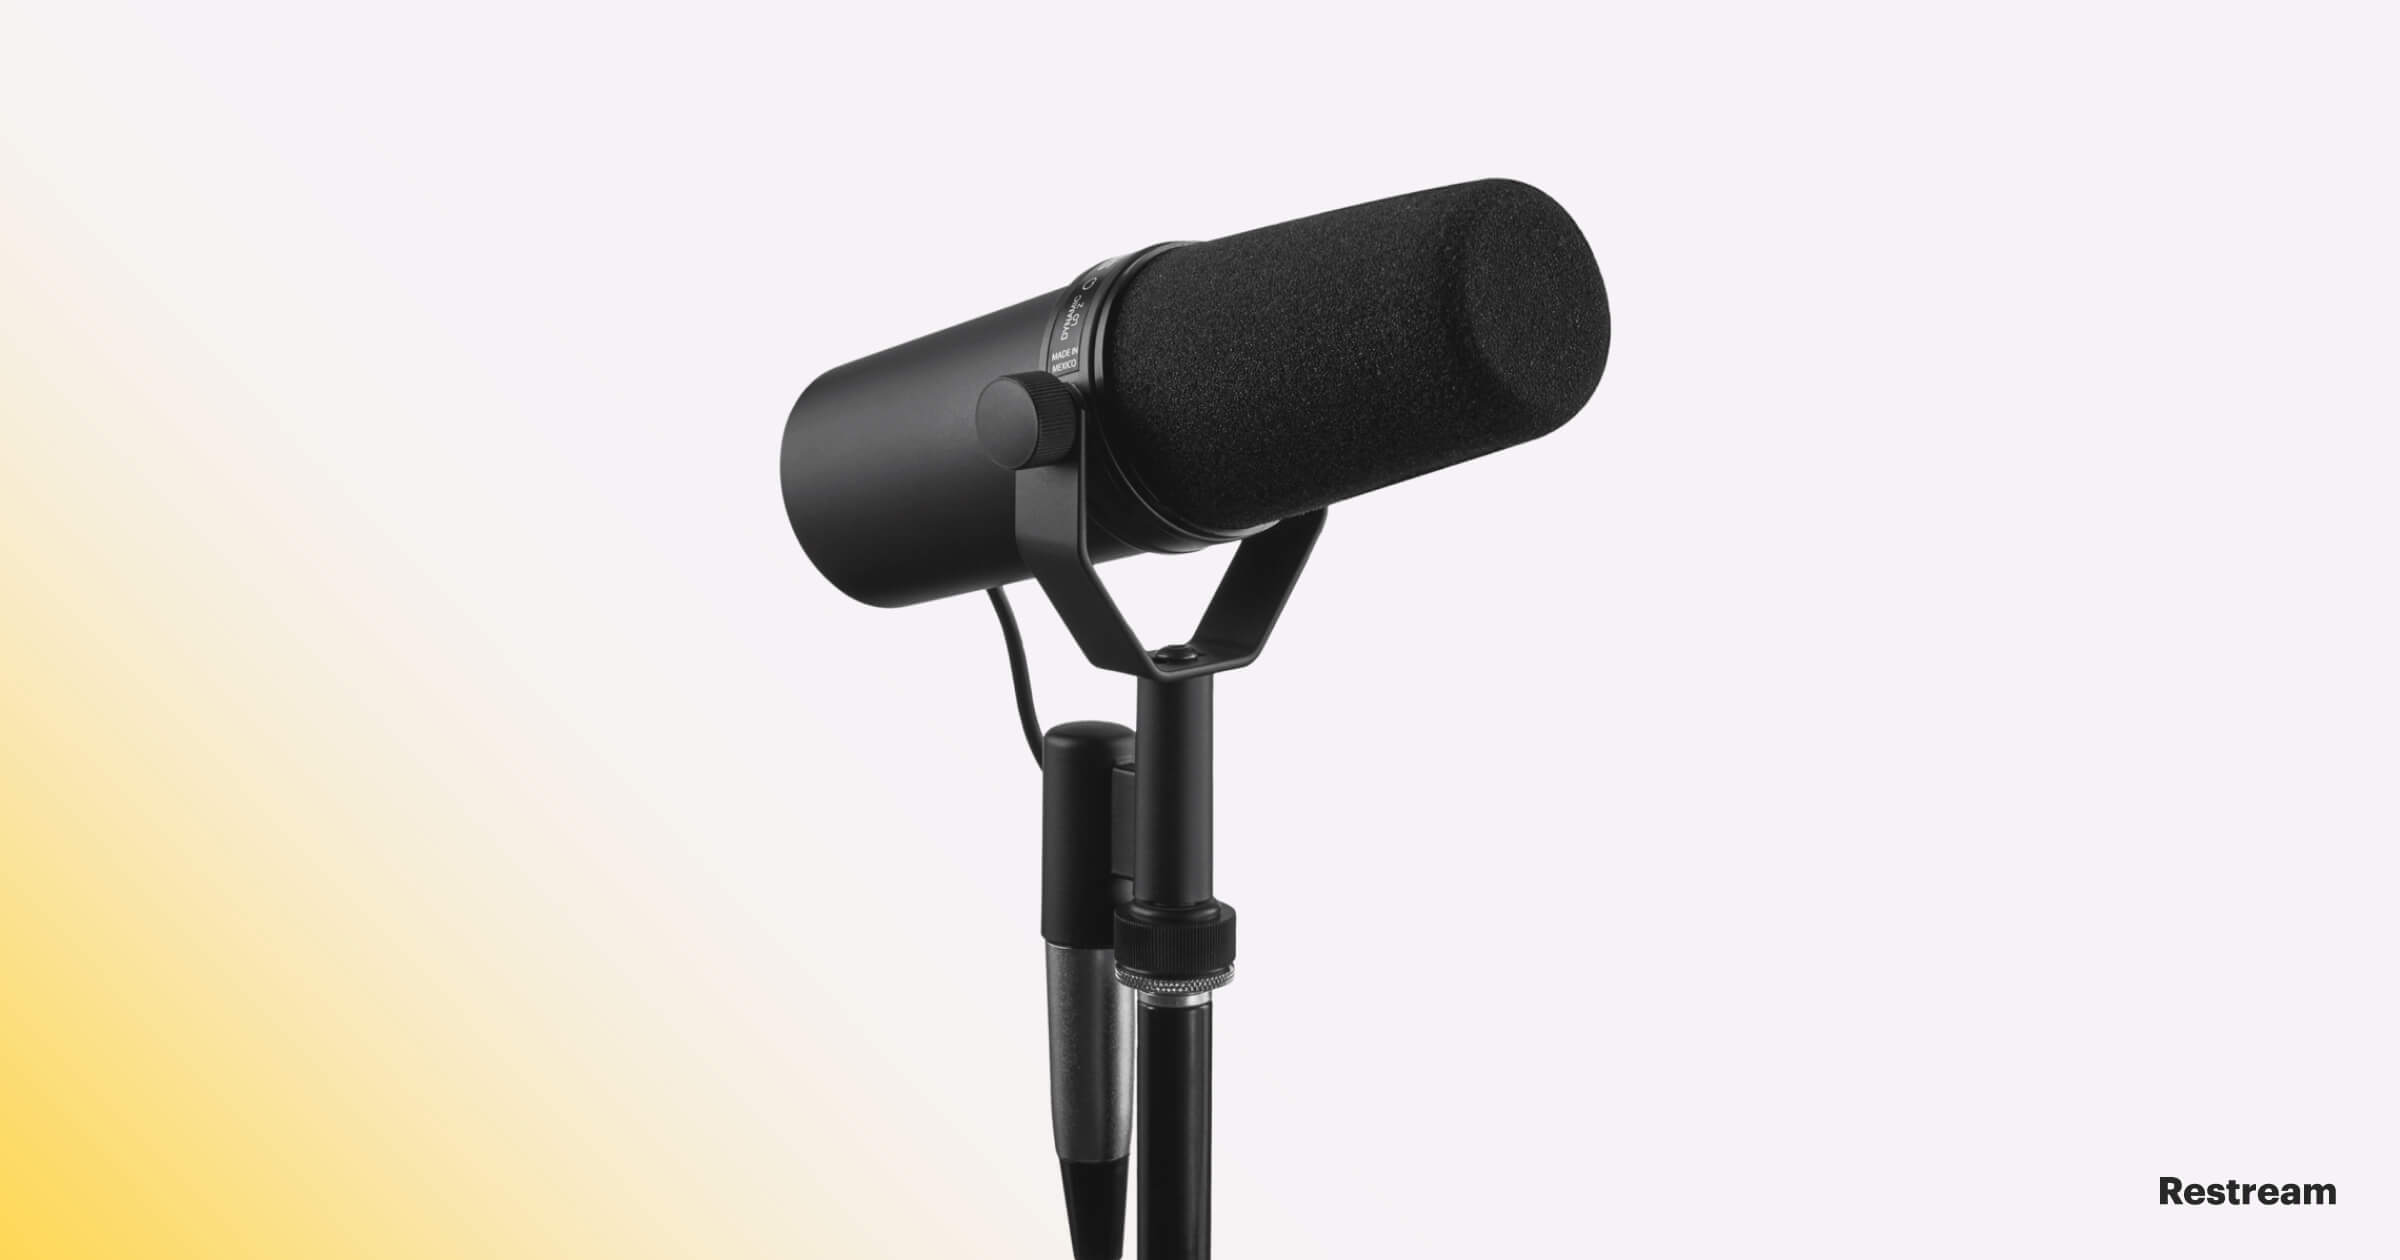 Microphone for streaming — Shure SM7B